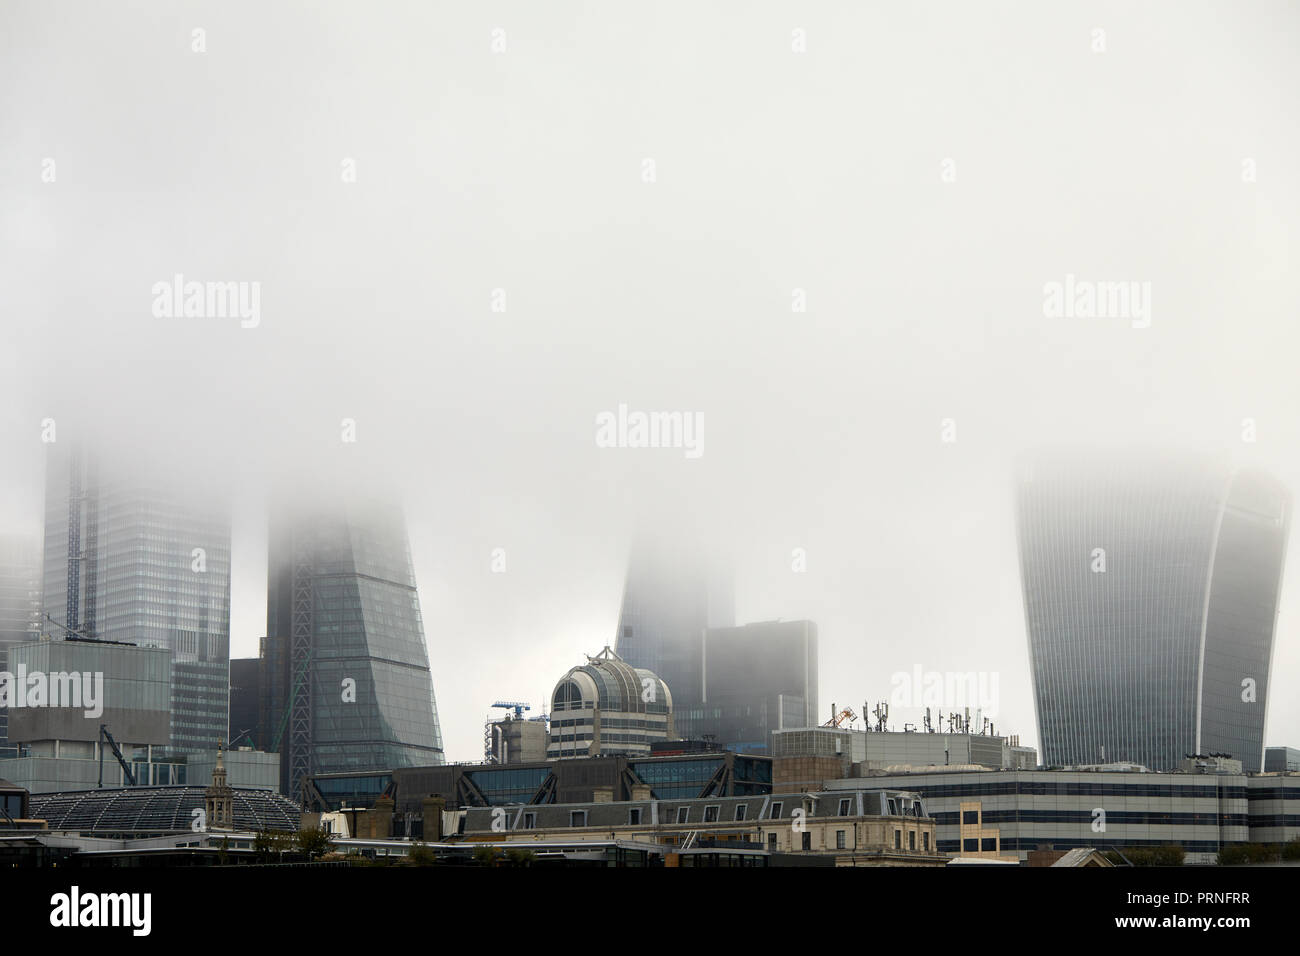 London, UK. 4th October, 2018. A blanket of fog that obscures the skyline of the city of London. Credit: Kevin Frost/Alamy Live News Stock Photo